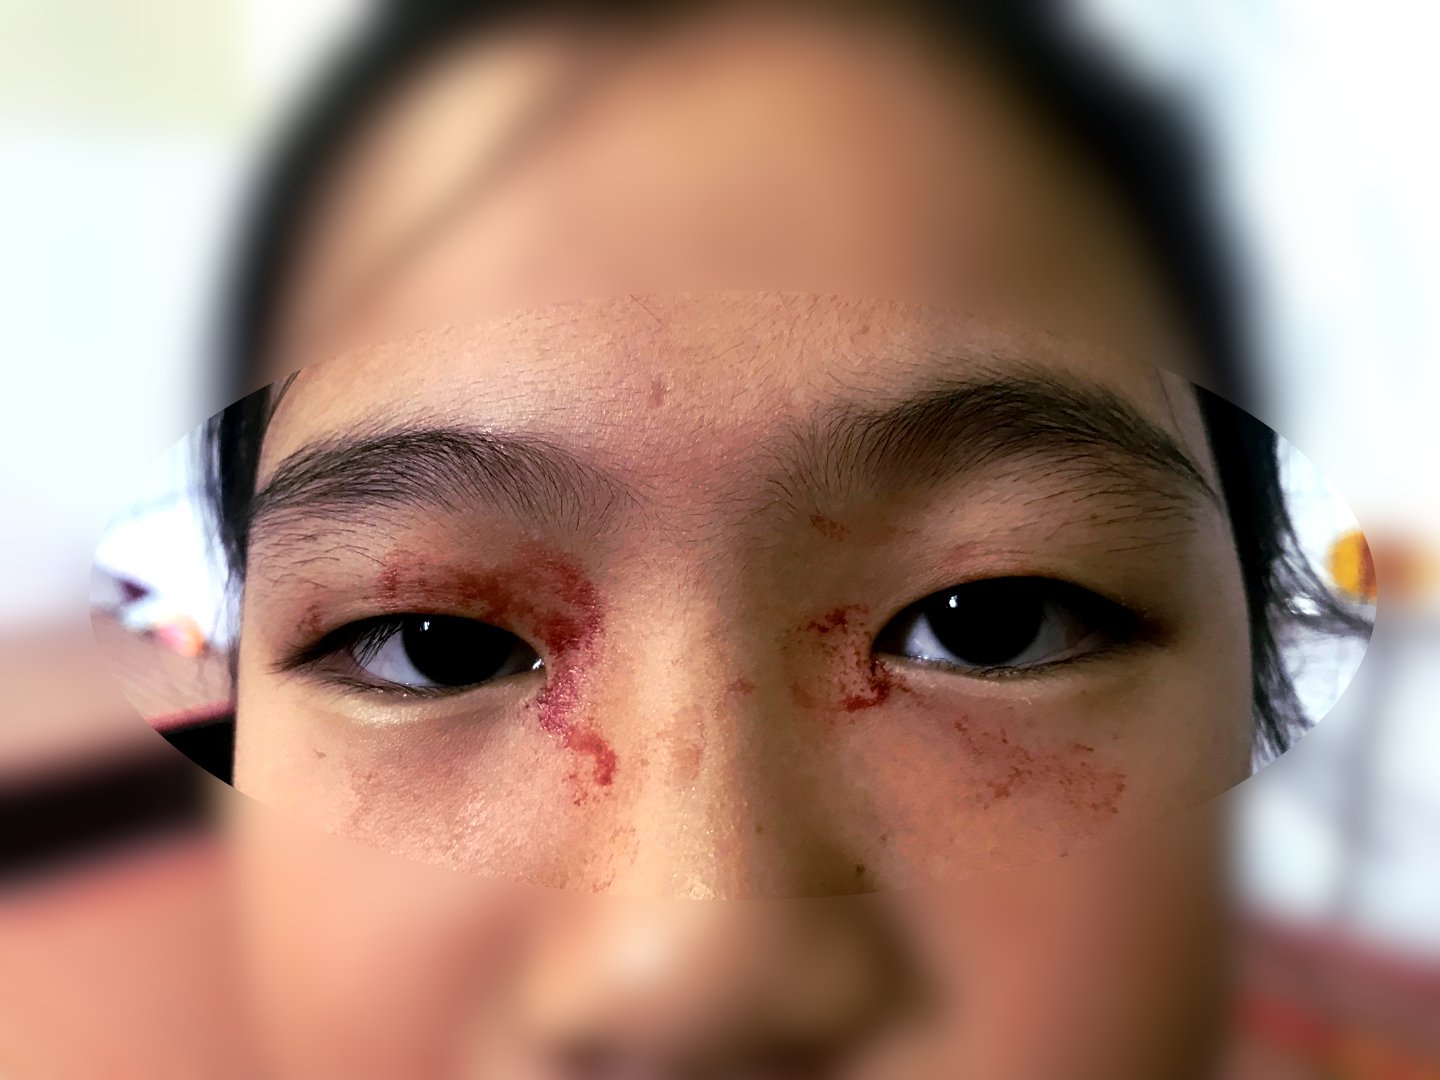 DAK DOA, VIETNAM Doctors have been left battled by a child patient who sweats blood, believing she has the ultra-rare medical condition hematidrosis (Credit: Pen News) (Pen News ??25, ??15, ??10 online) (Contact editor@pennews.co.uk/07595759112)